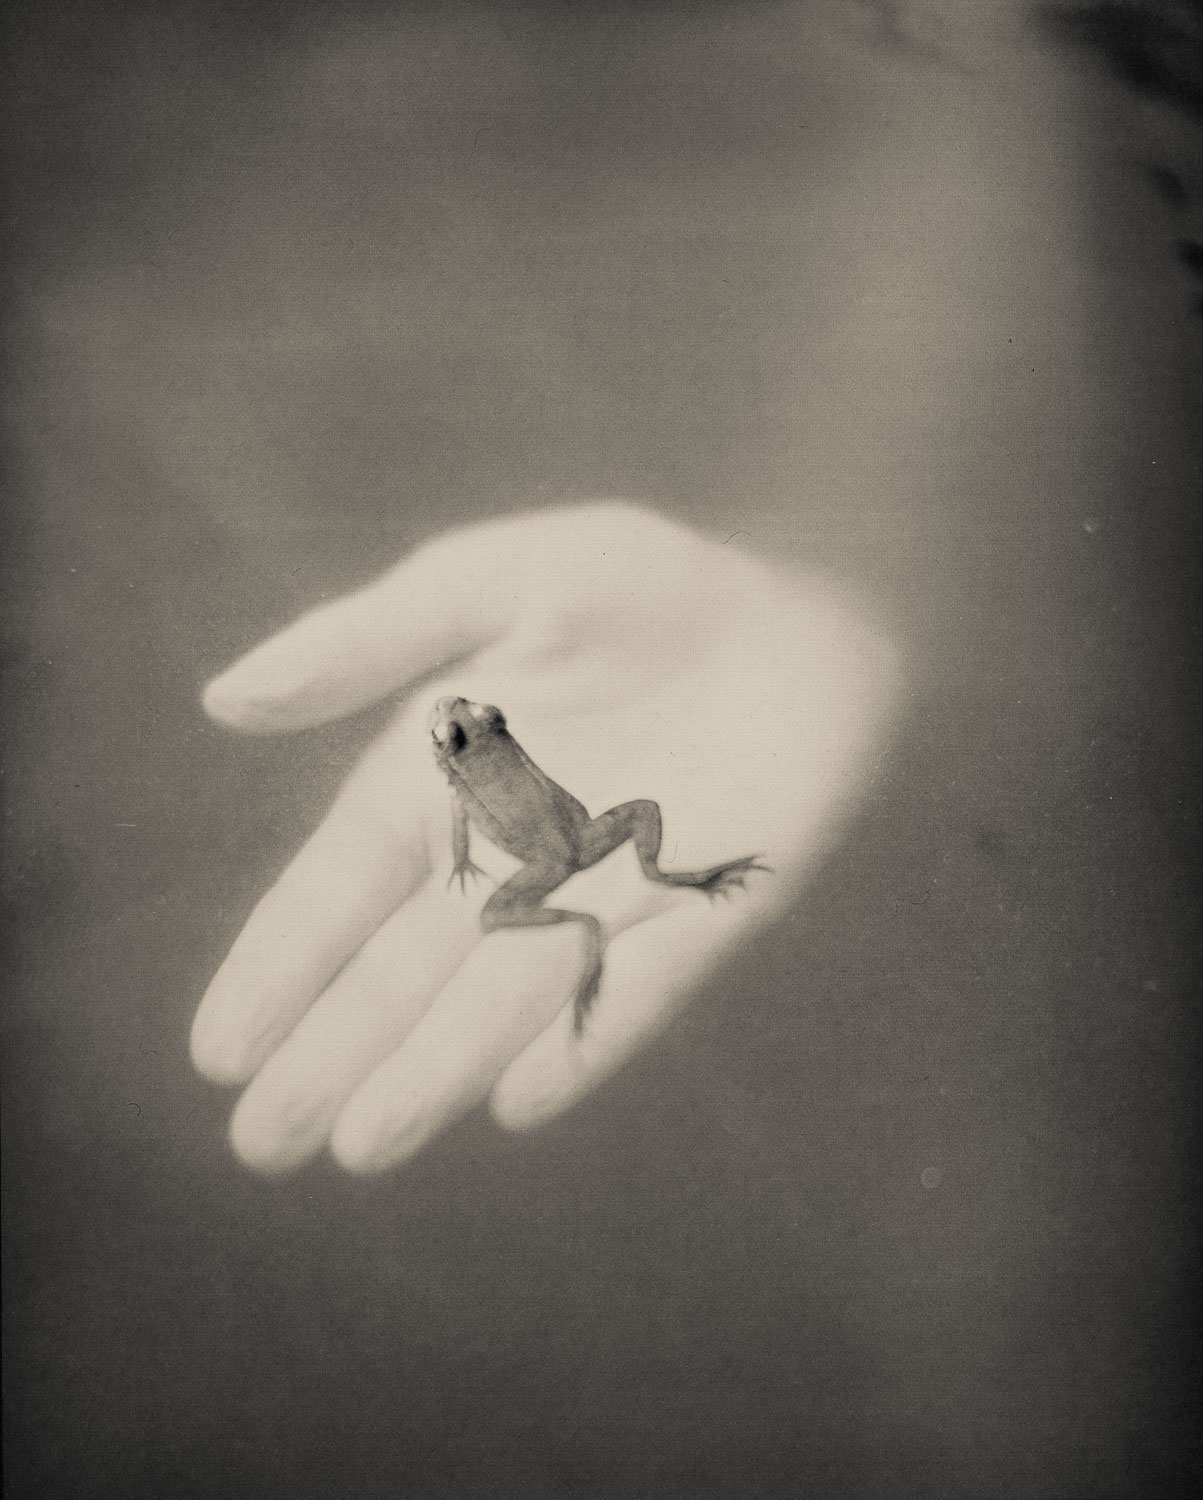 03 A Frog in Hand